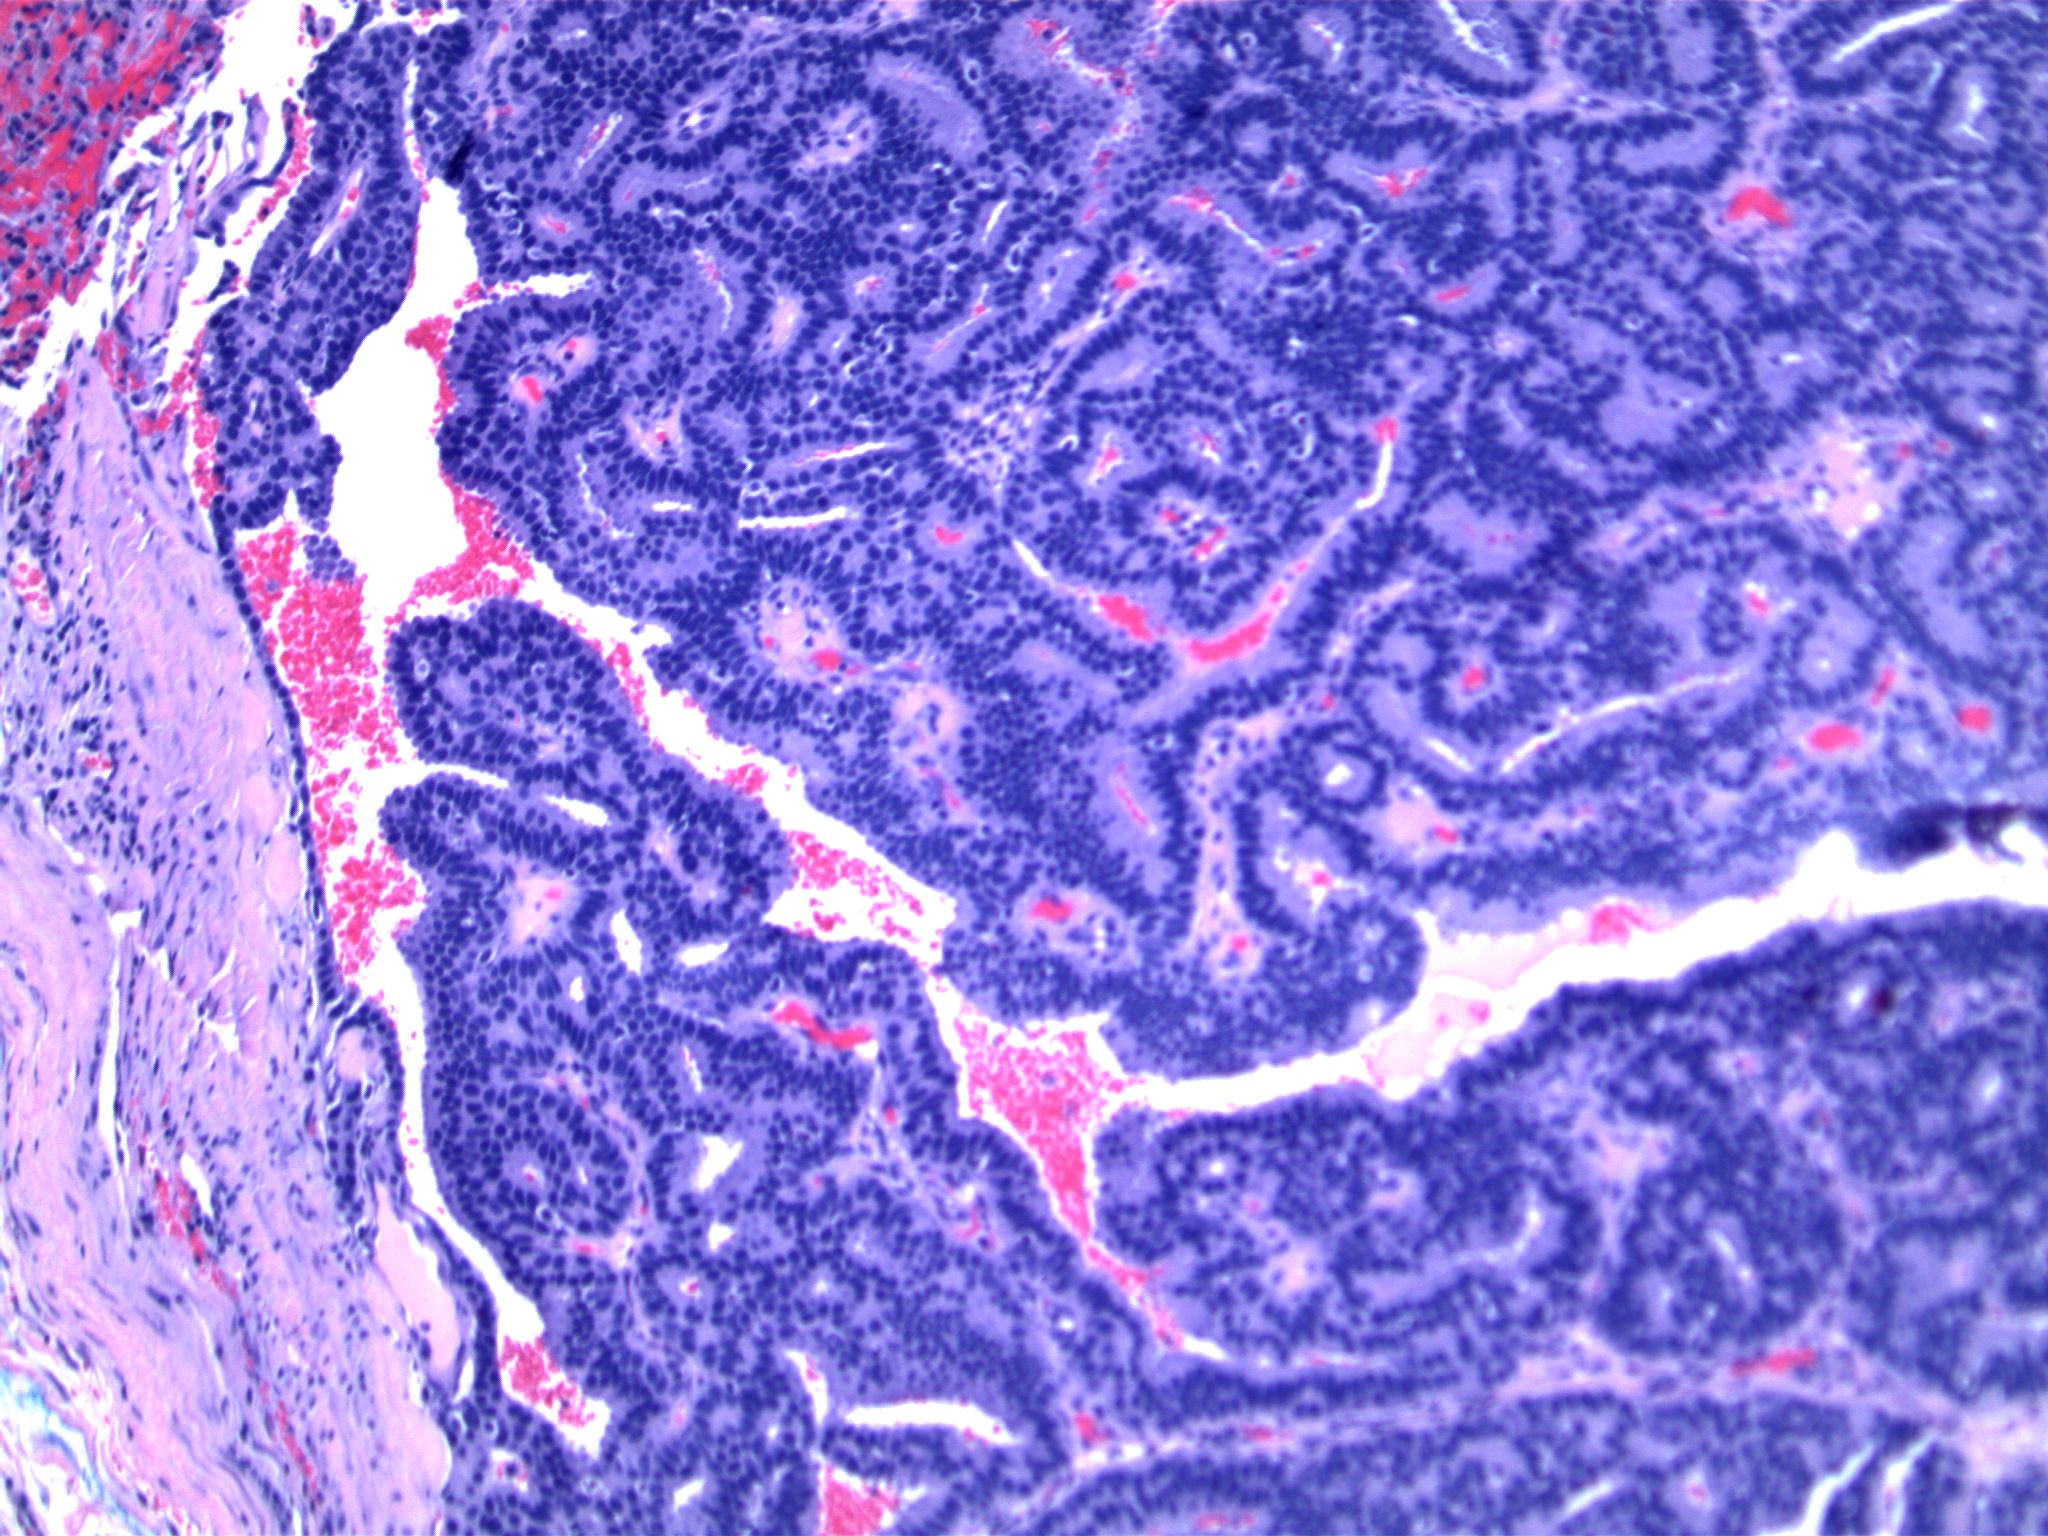 Image 3. Fibrous duct wall is lined by a single layer of cuboidal epithelium.